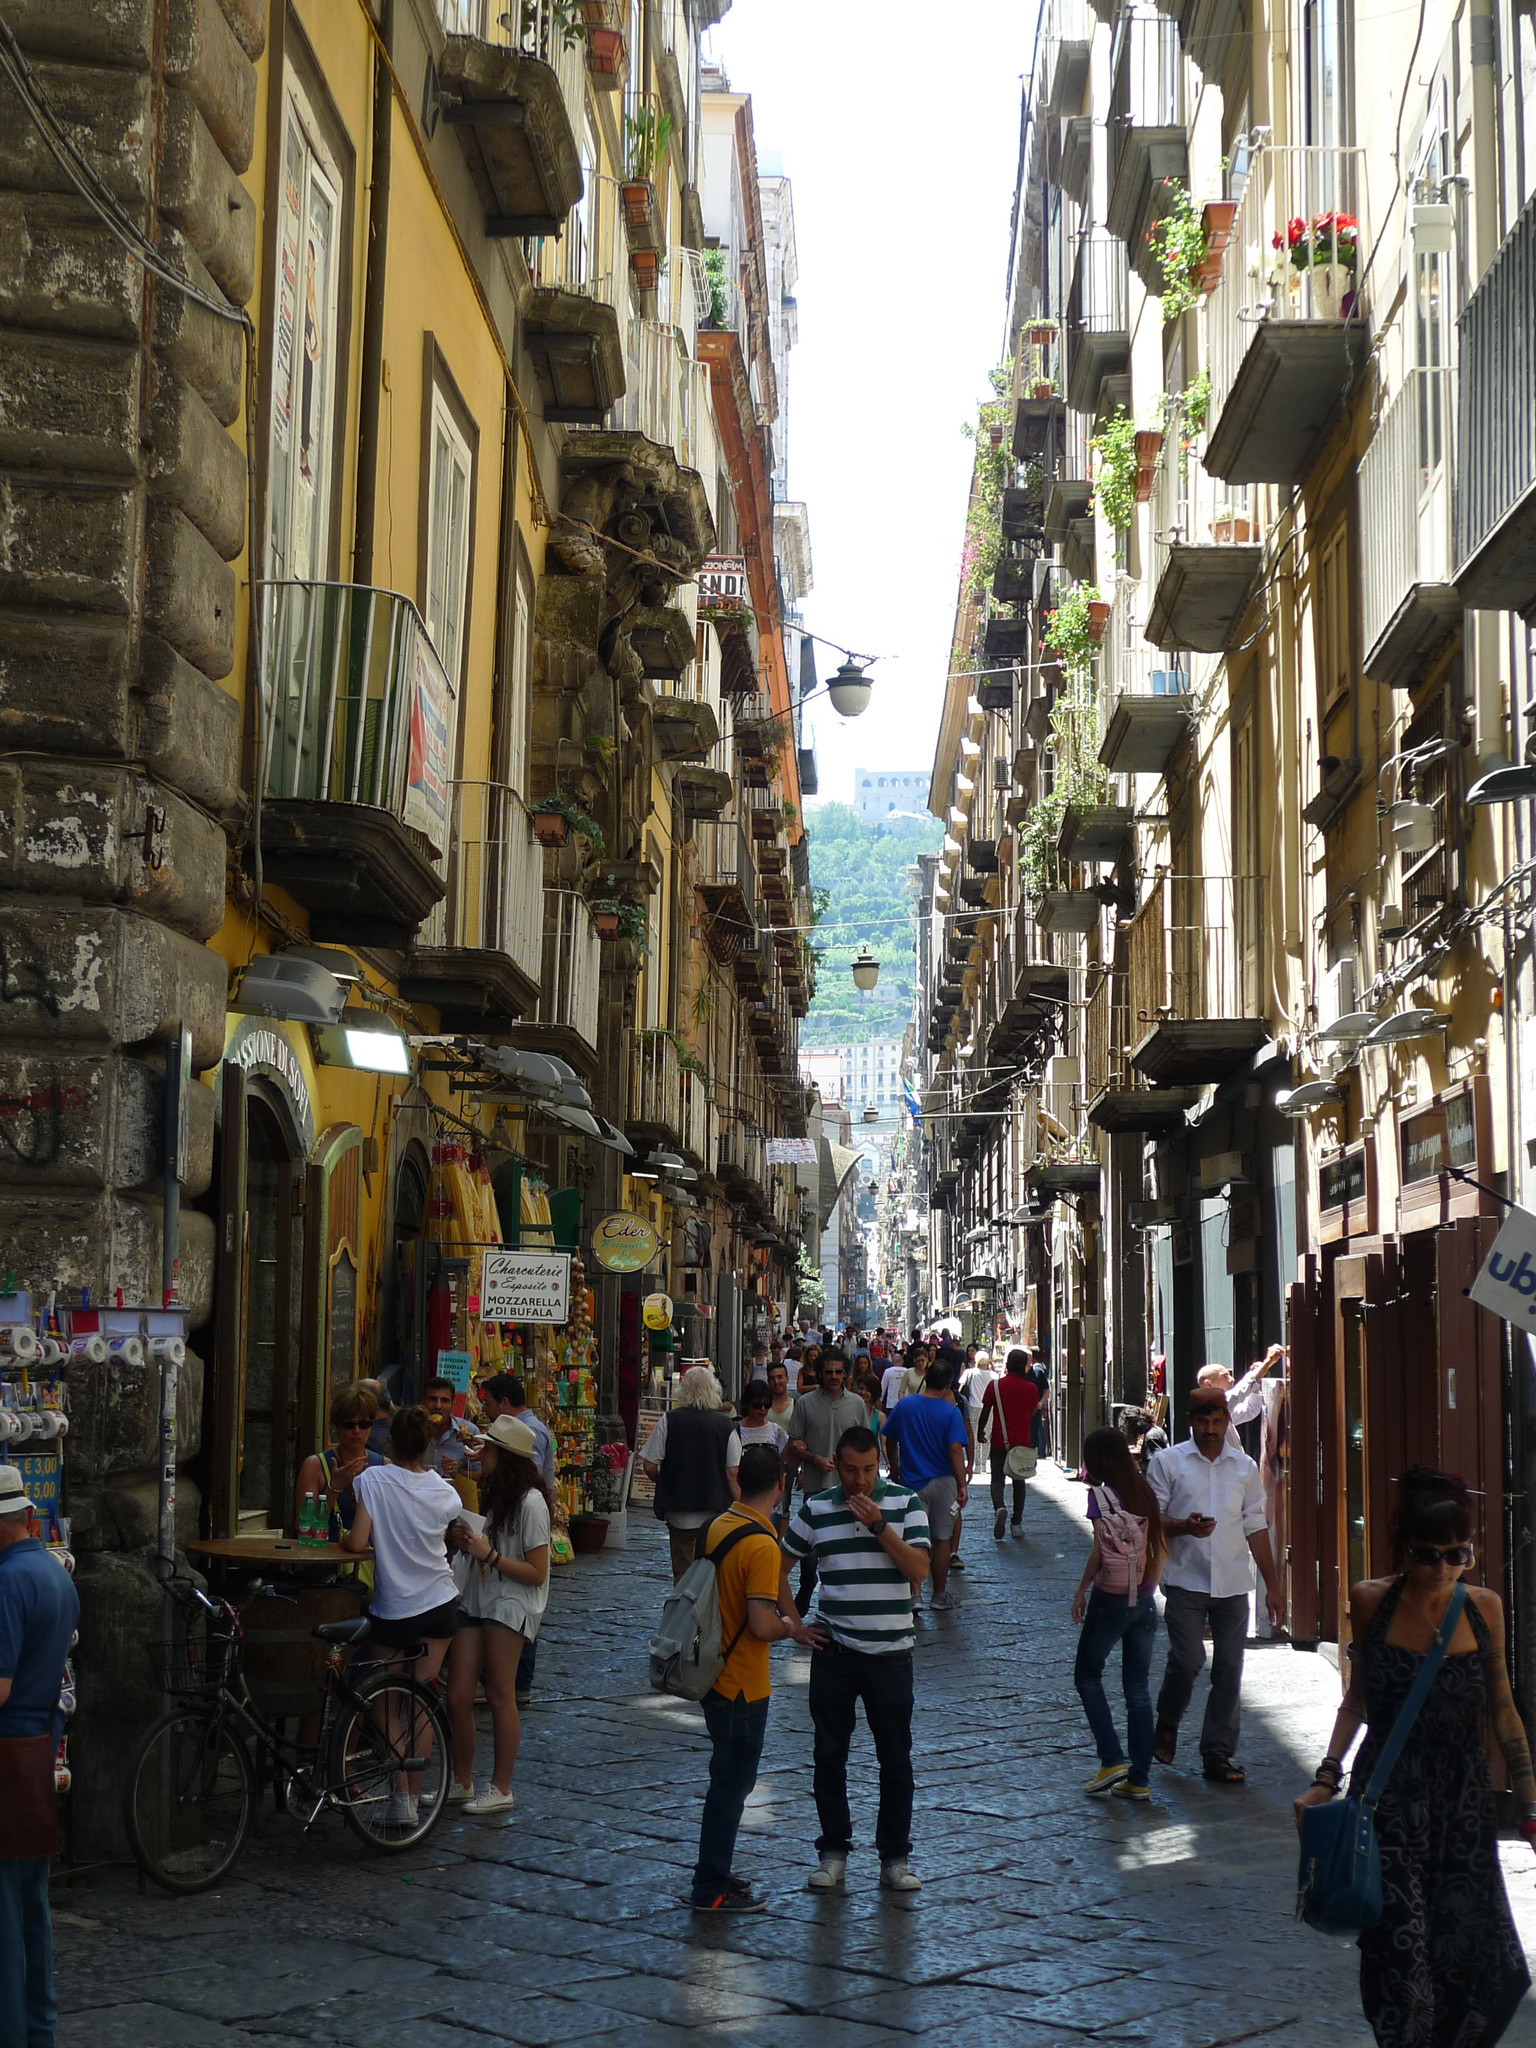 NAPLES, ITALY -The Spaccanapoli cuts through the historic center of Naples. This narrow, pedestrian-